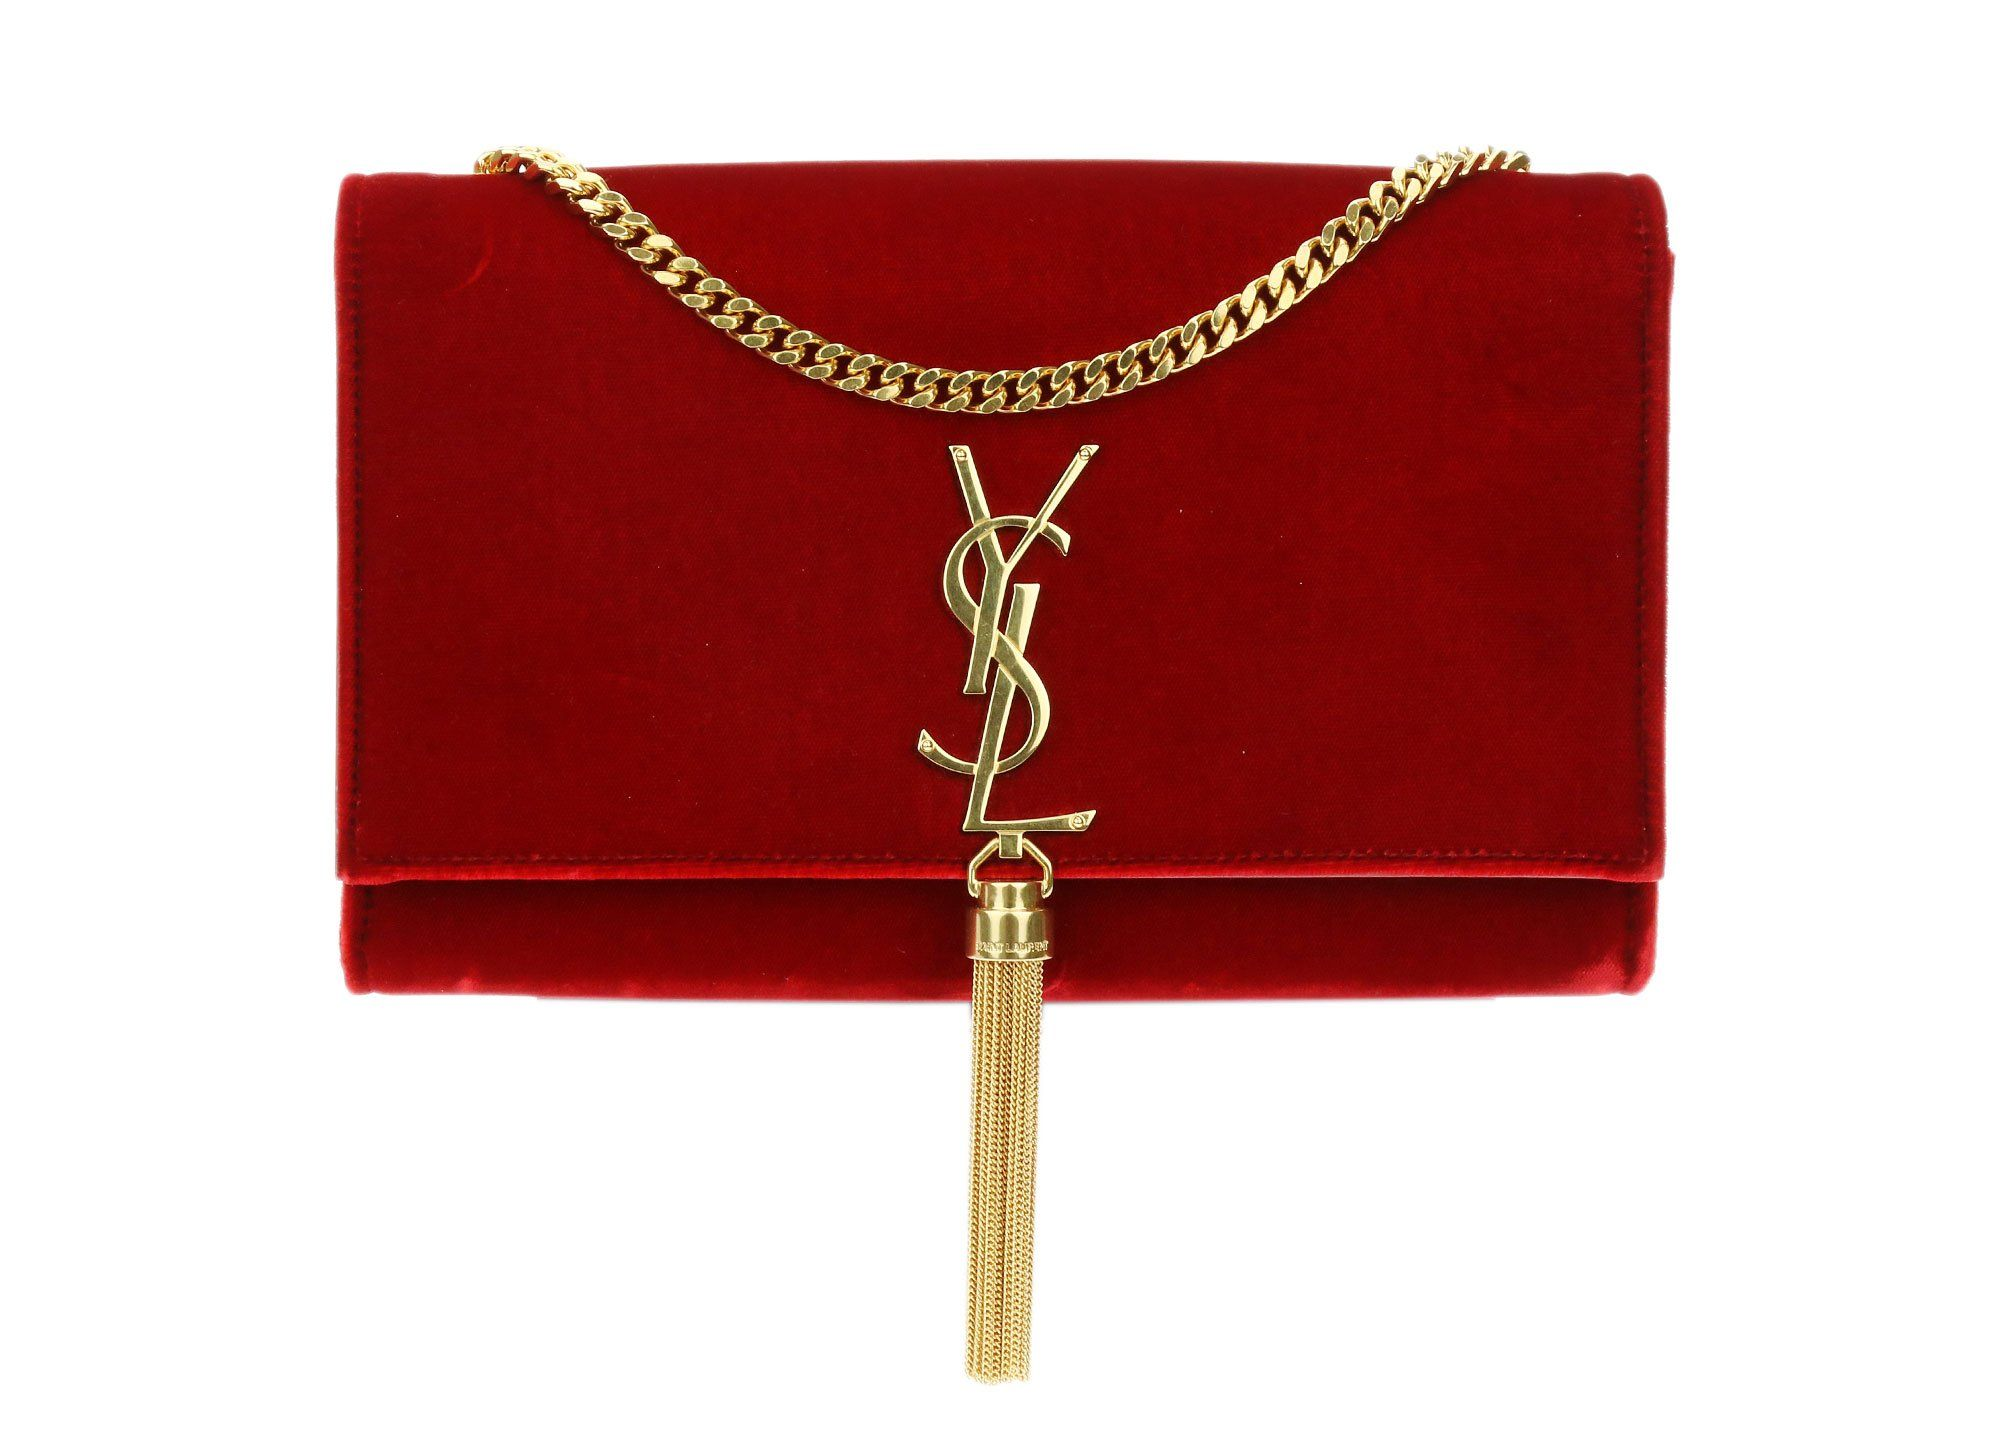 53b2dc2cb6a YSL Saint Laurent Rouge Velvet Monogram Kate Tassel Crossbody is this  season's it bag! Featured in red velvet this bag is also perfect for the  upcoming ...